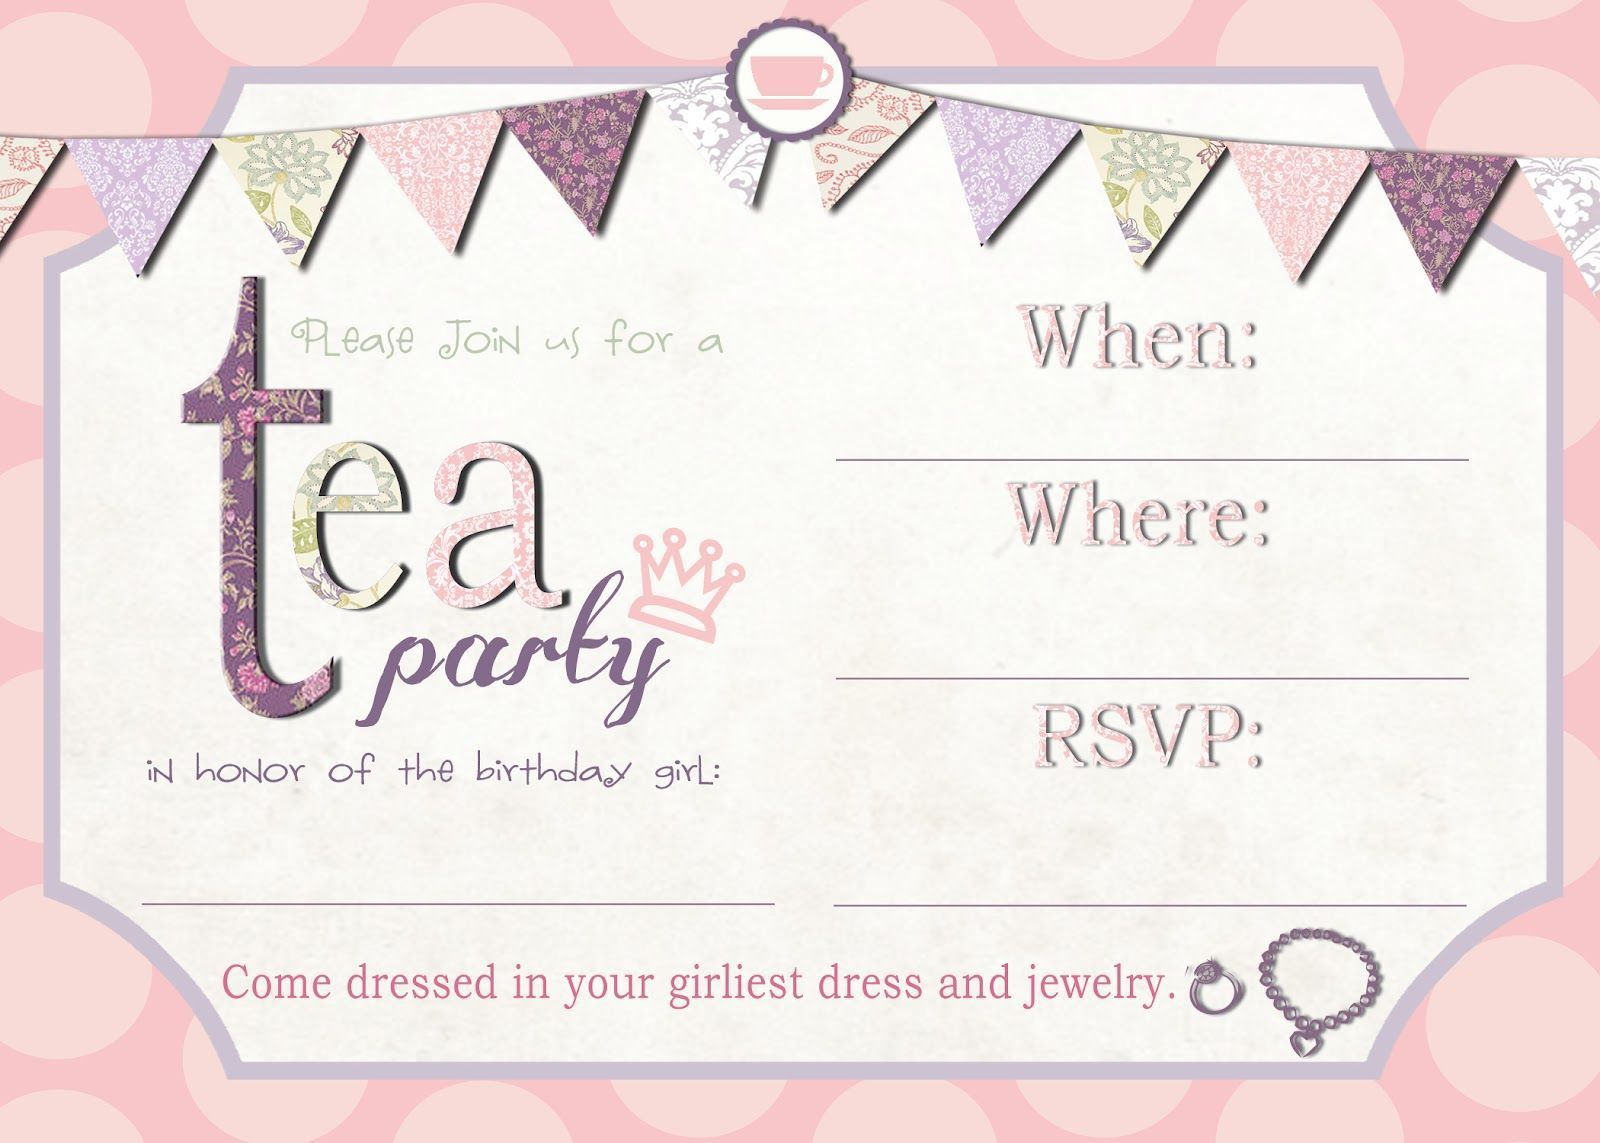 001 Awful Tea Party Invitation Template High Definition  Vintage Free Editable Card PdfFull